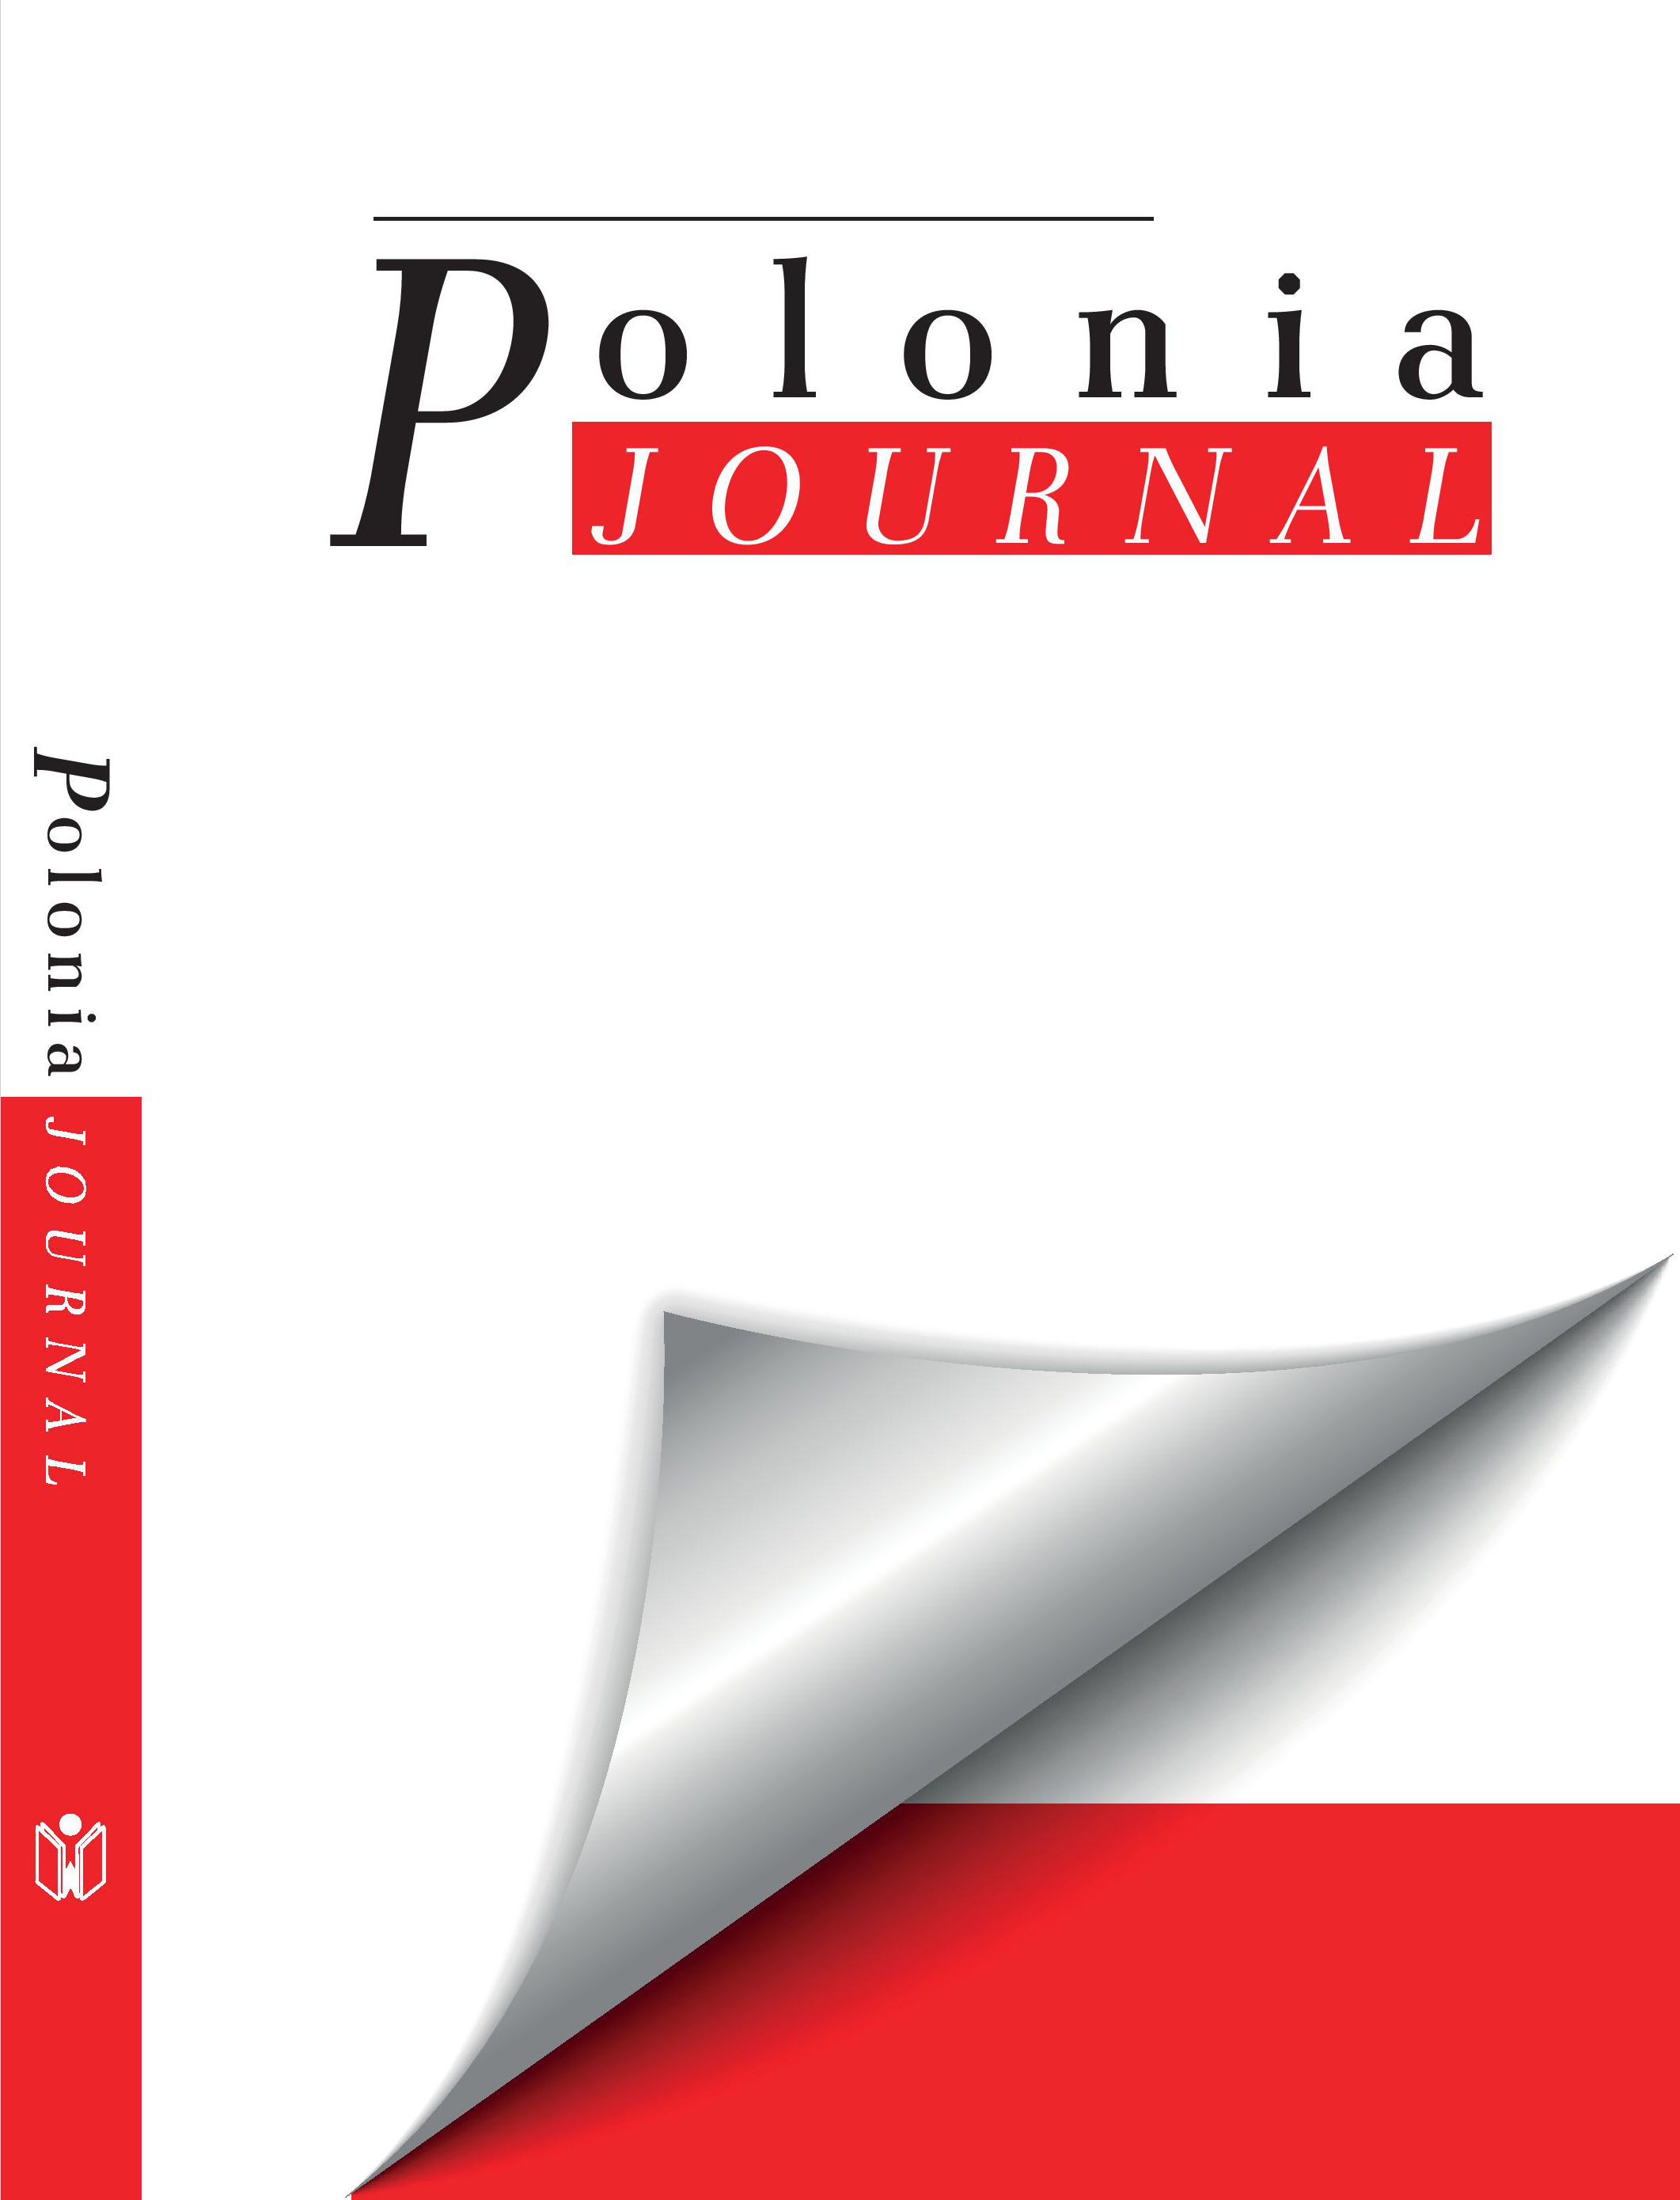 Polonia Journal Cover Image